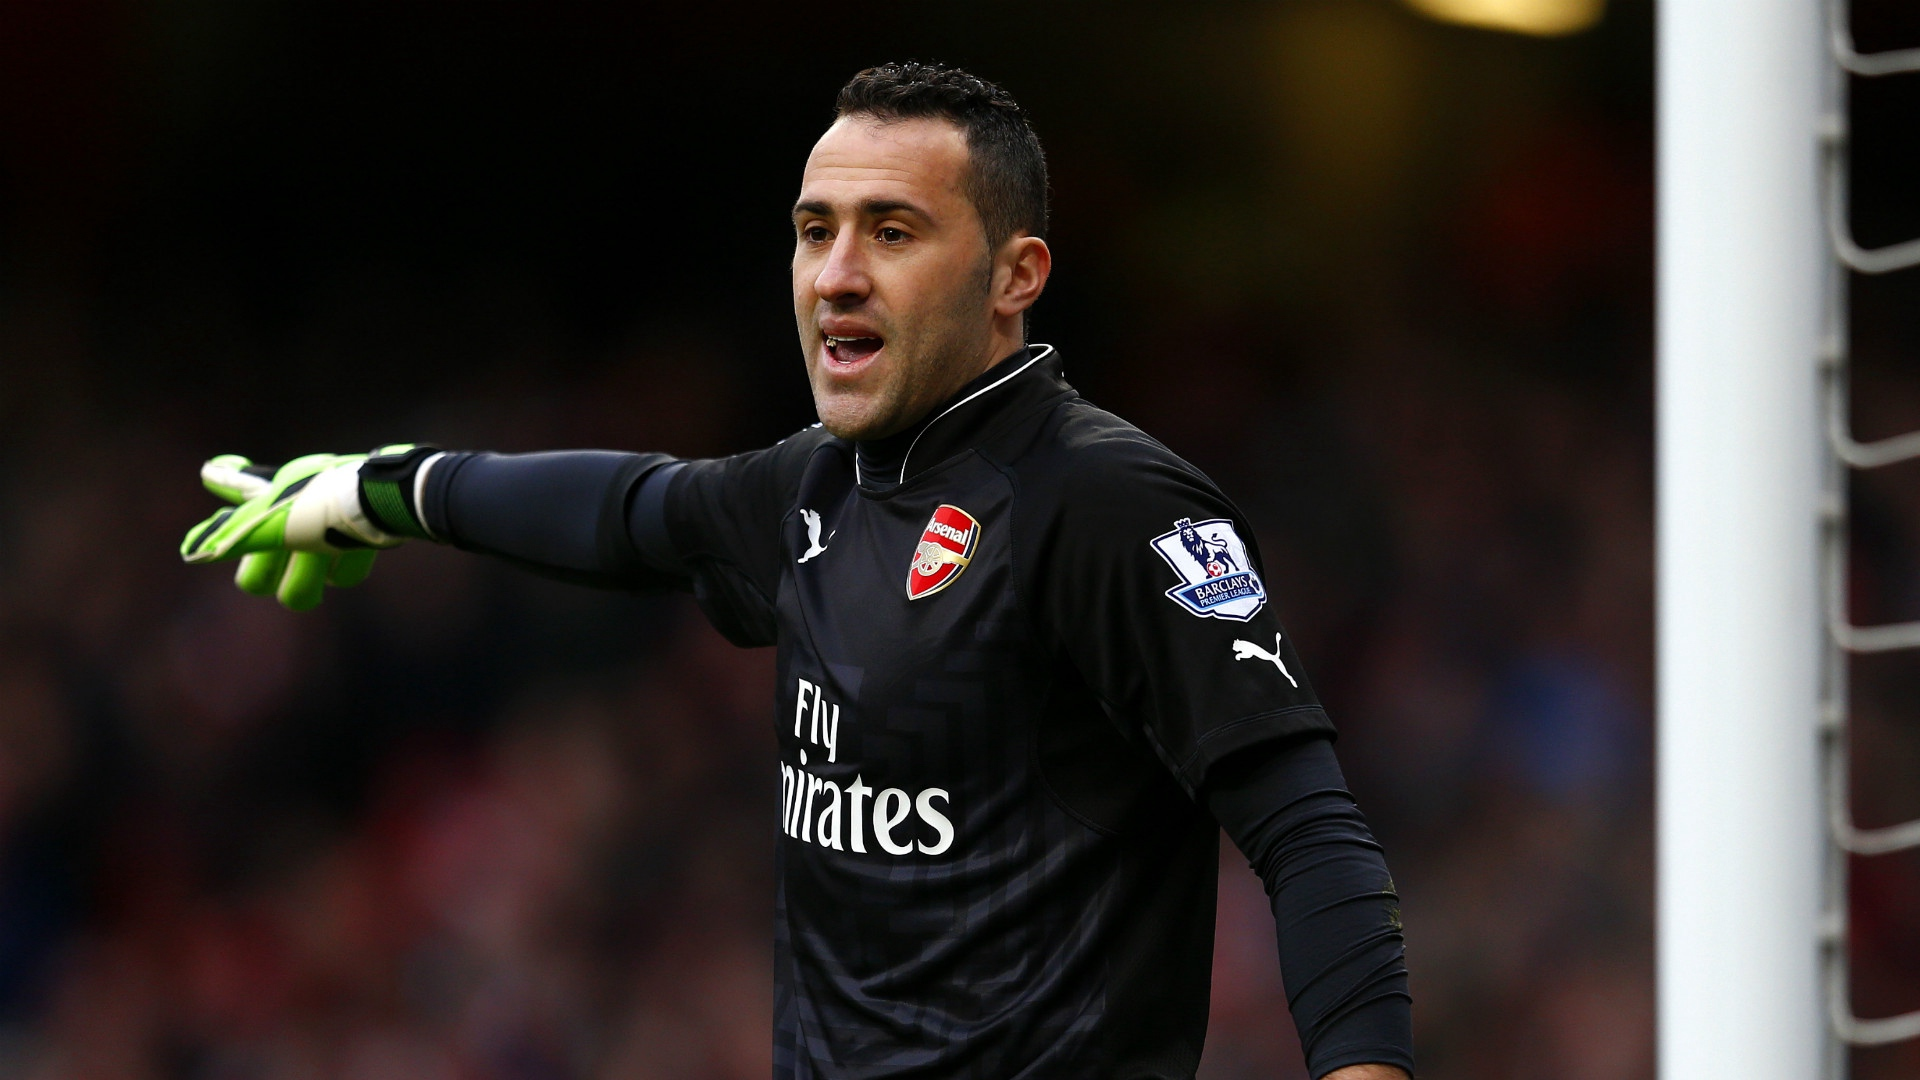 Download wallpaper 1920x1080 david ospina arsenal footballer hd 1920x1080